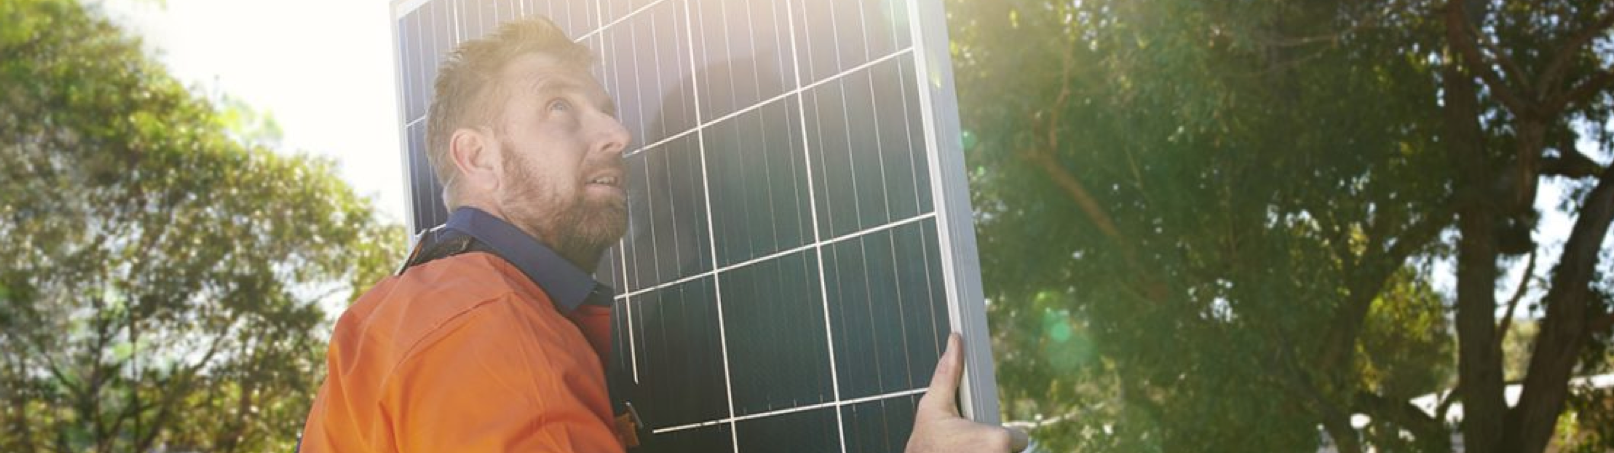 Reduce your bills with solar - image